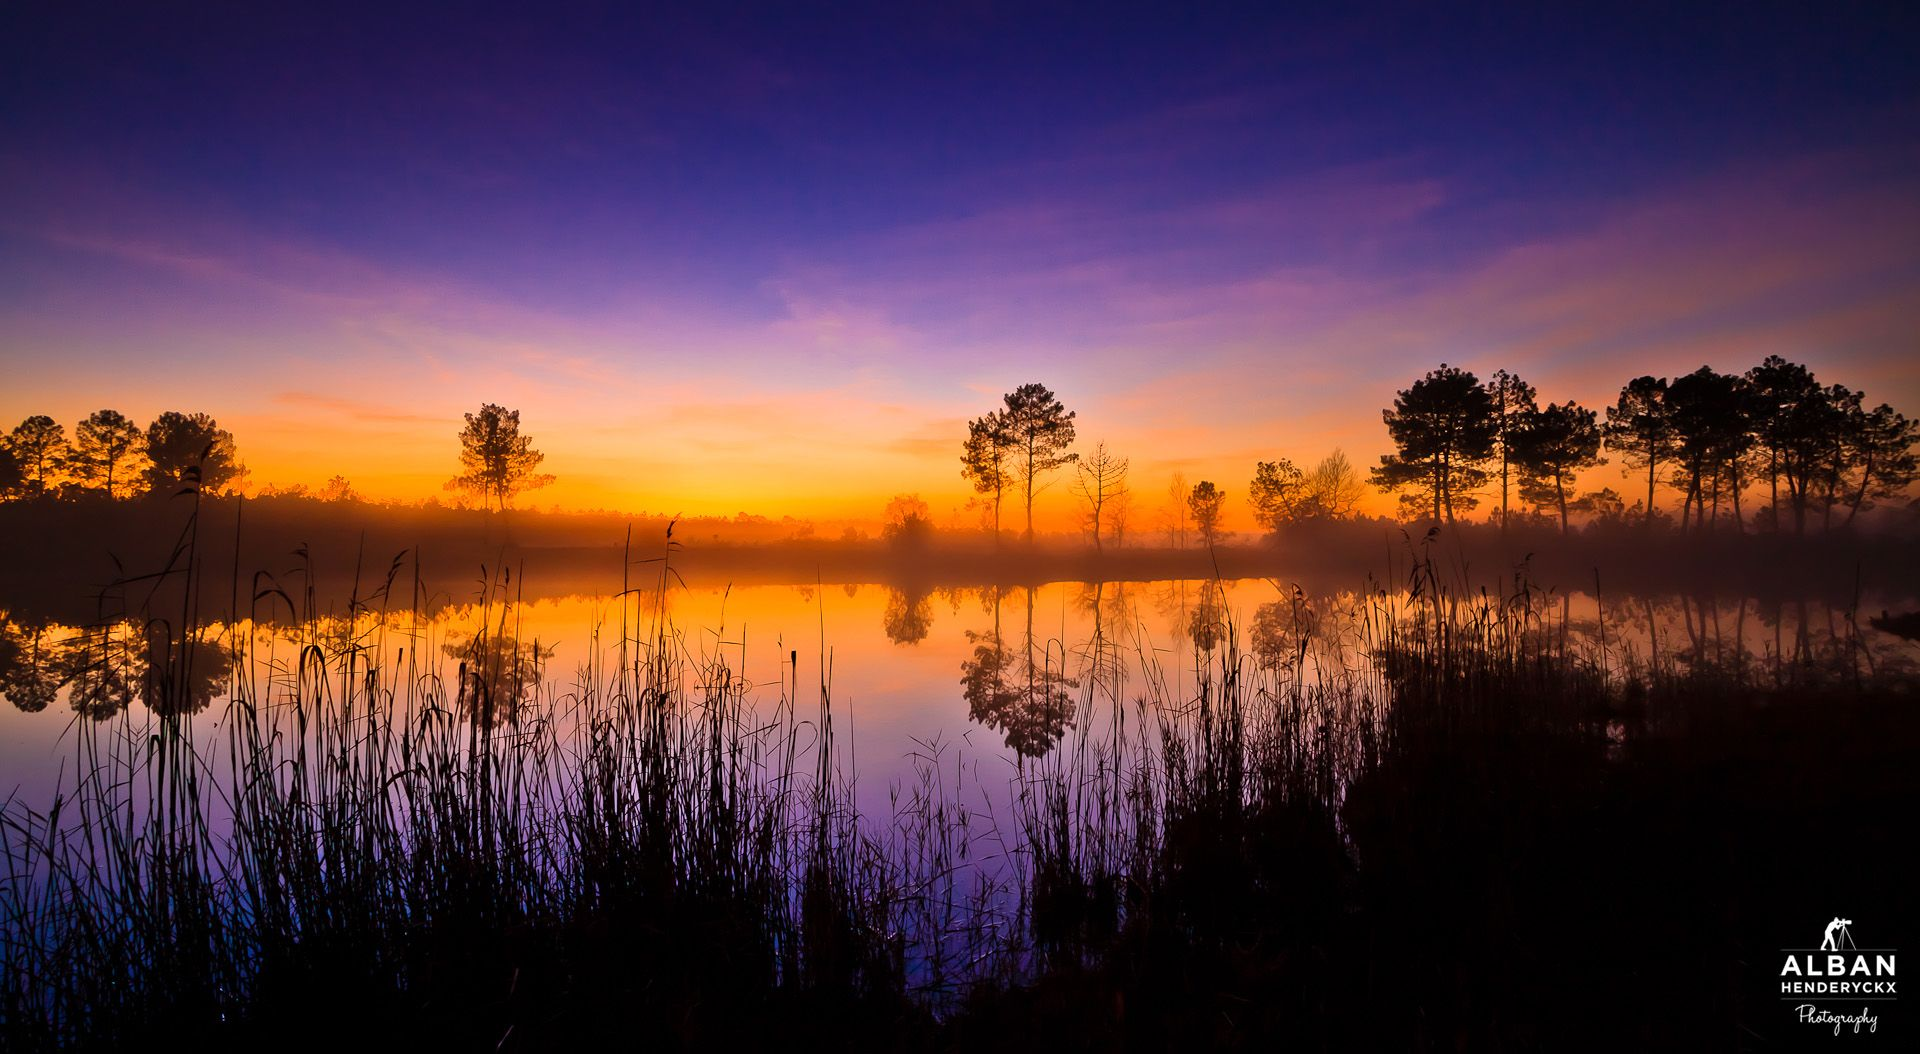 Sunrise over the Landes Forest | Alban Henderyckx Photography